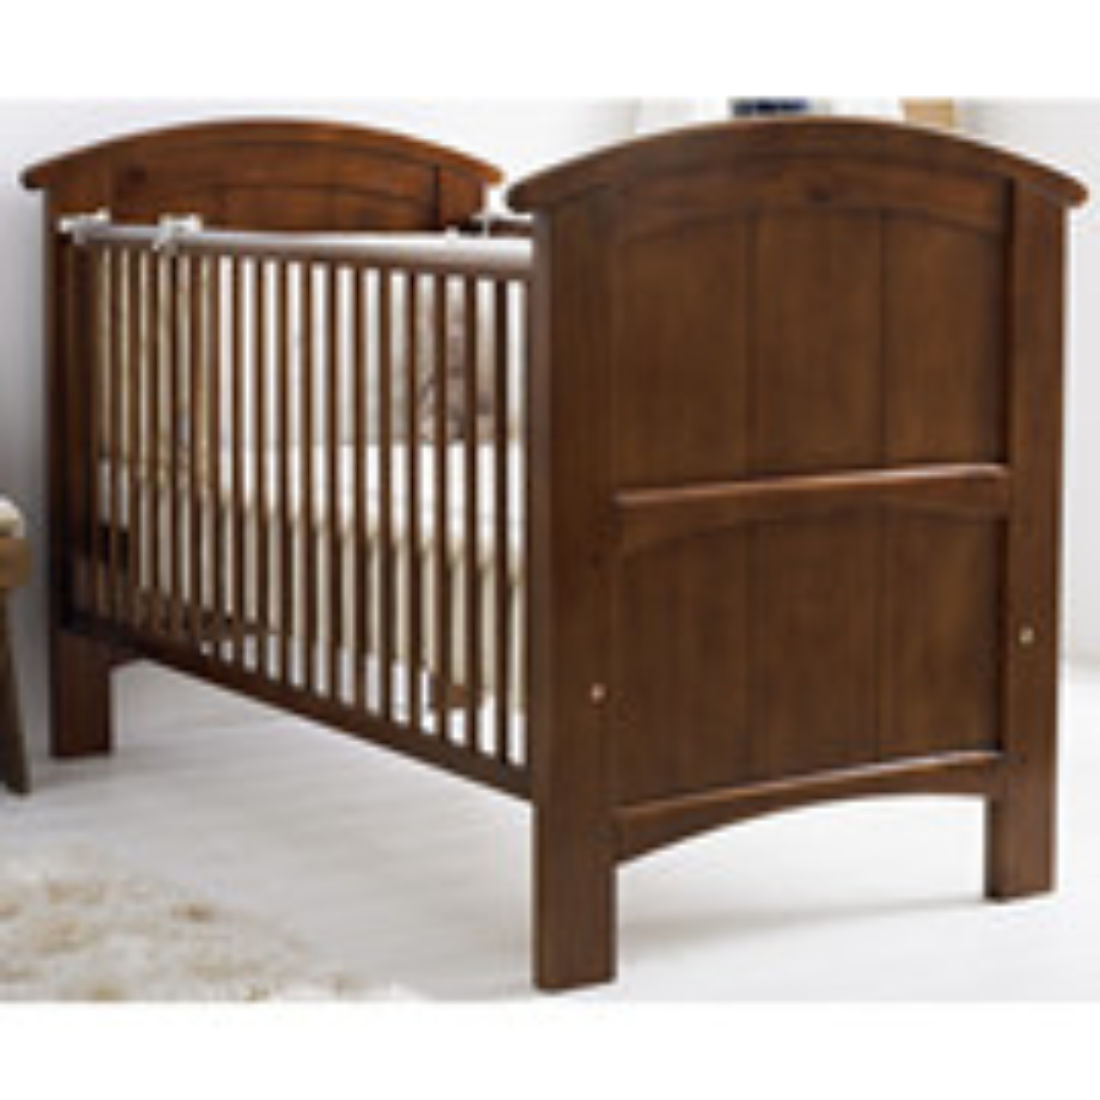 Mattress to fit Cosatto HOGARTH cot bed